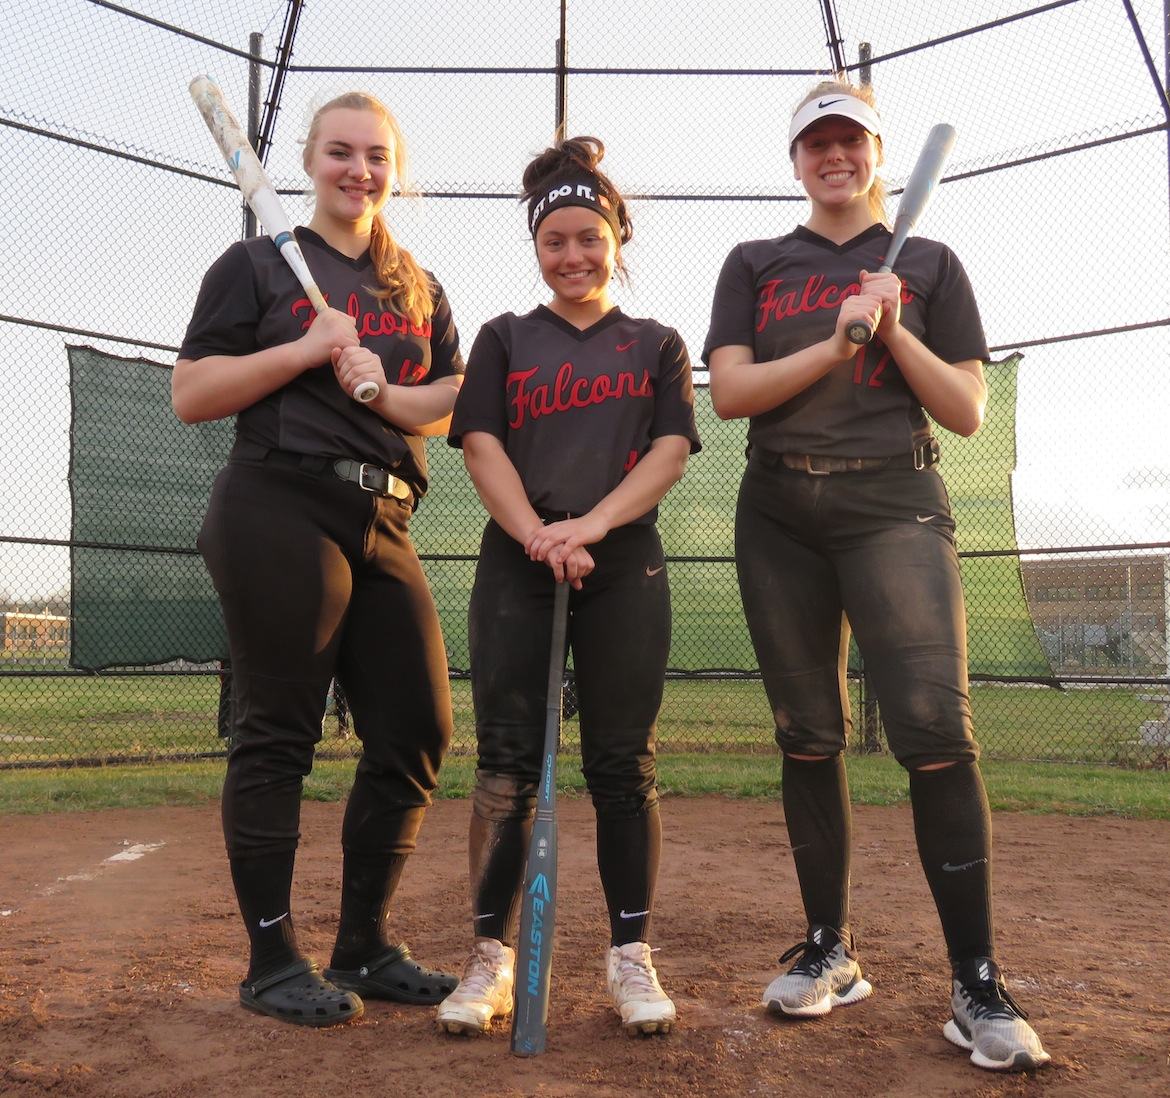 From left, Mackenzie Quider, Maddie Evarts and Mackenzie Franks pose for a photo following the team's 5-4 win over Lewiston-Porter. The trio of captains have a combined 16 years of varsity experience. (Photo by David Yarger)